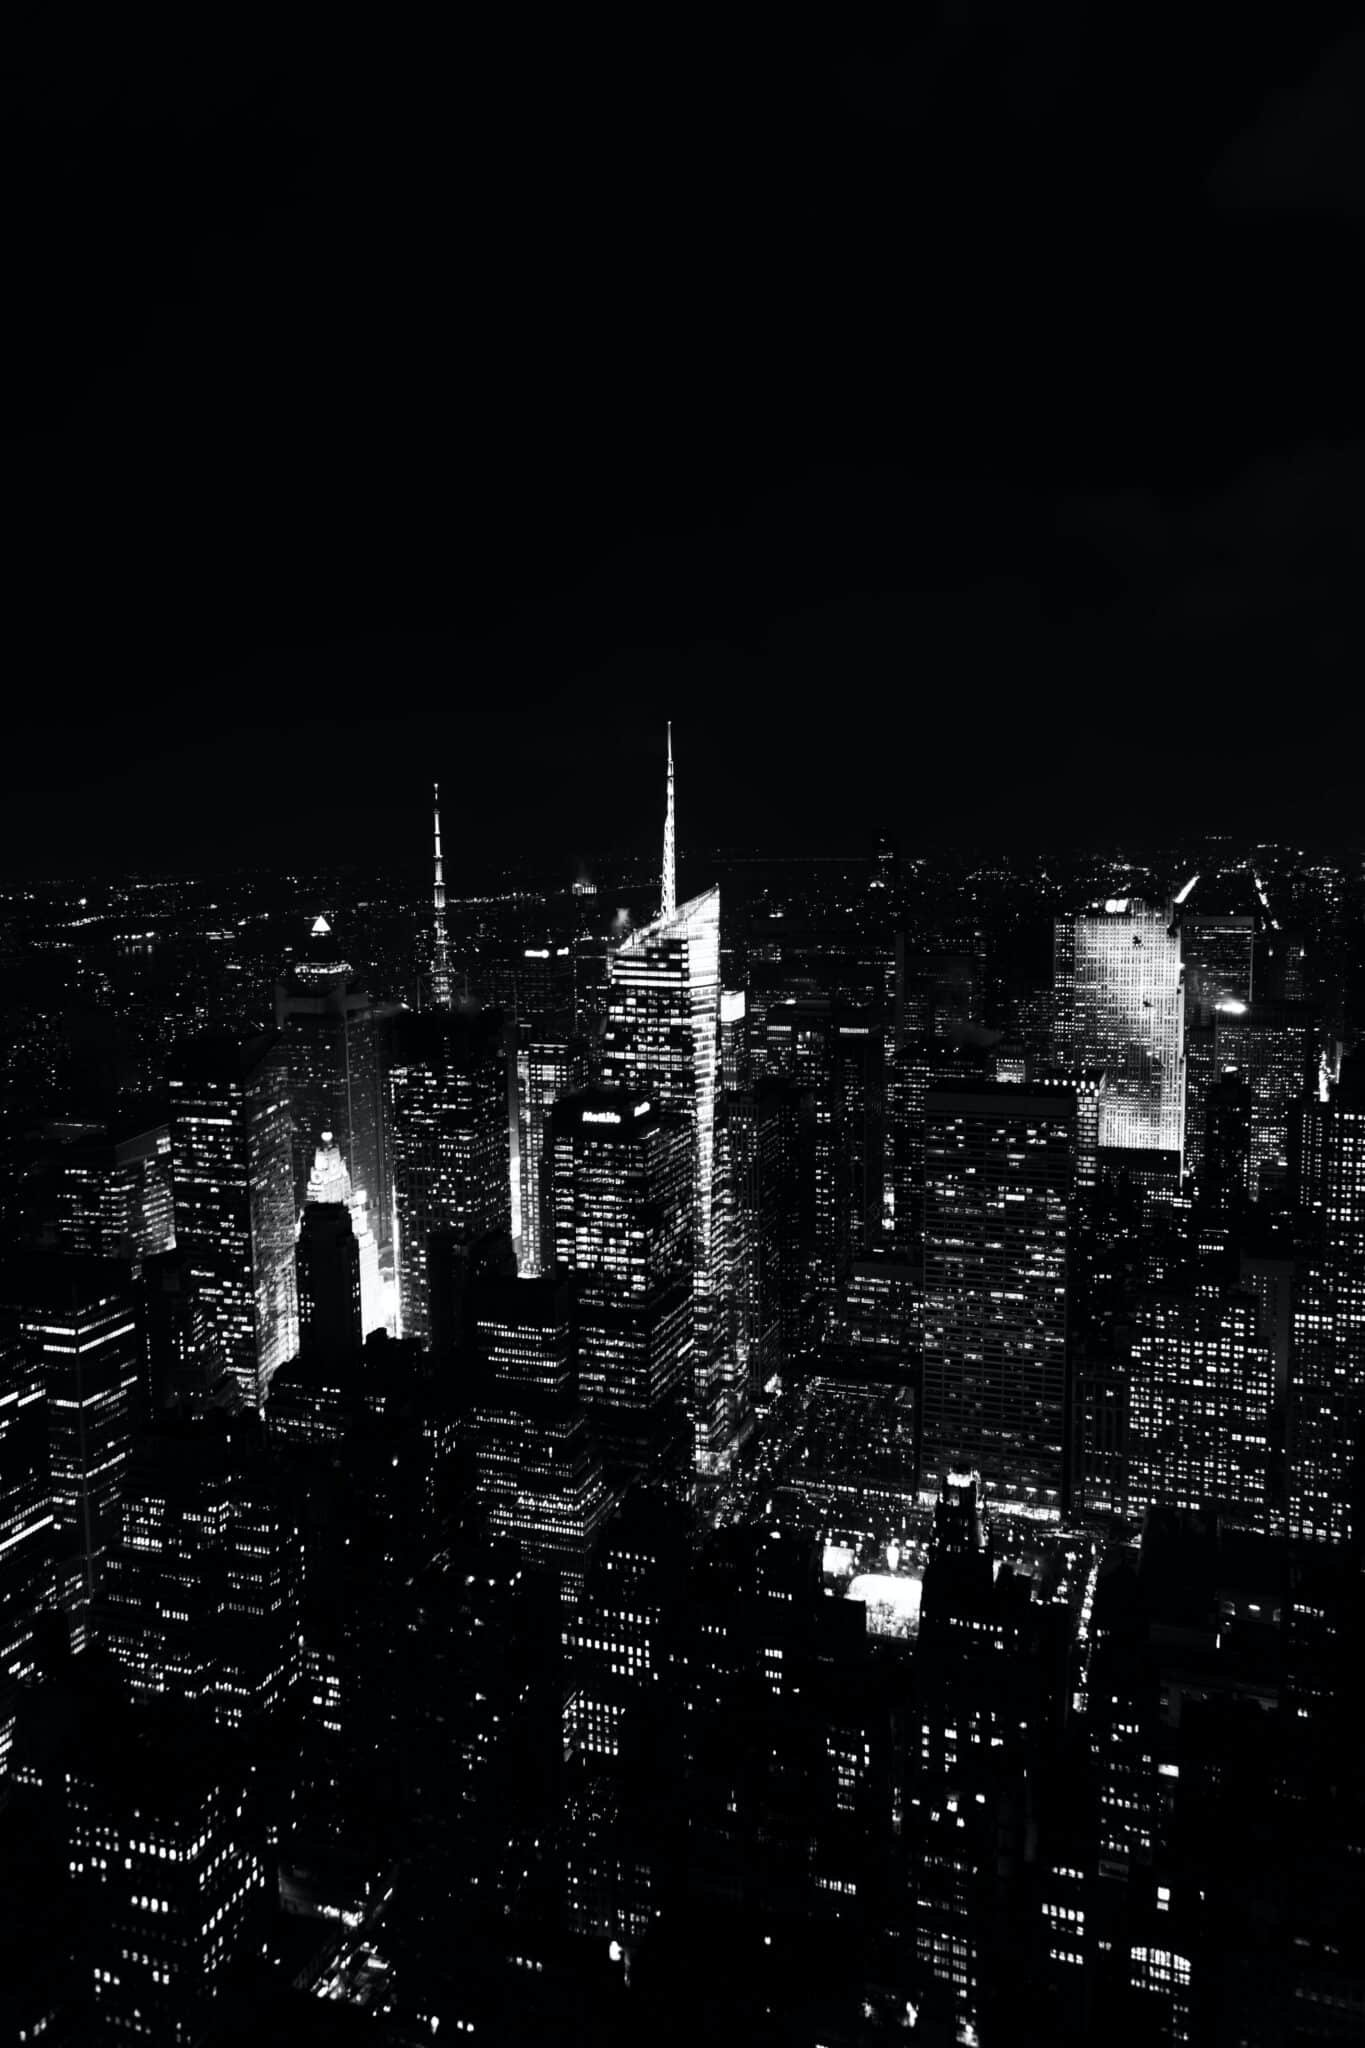 image of skyscrapers at night